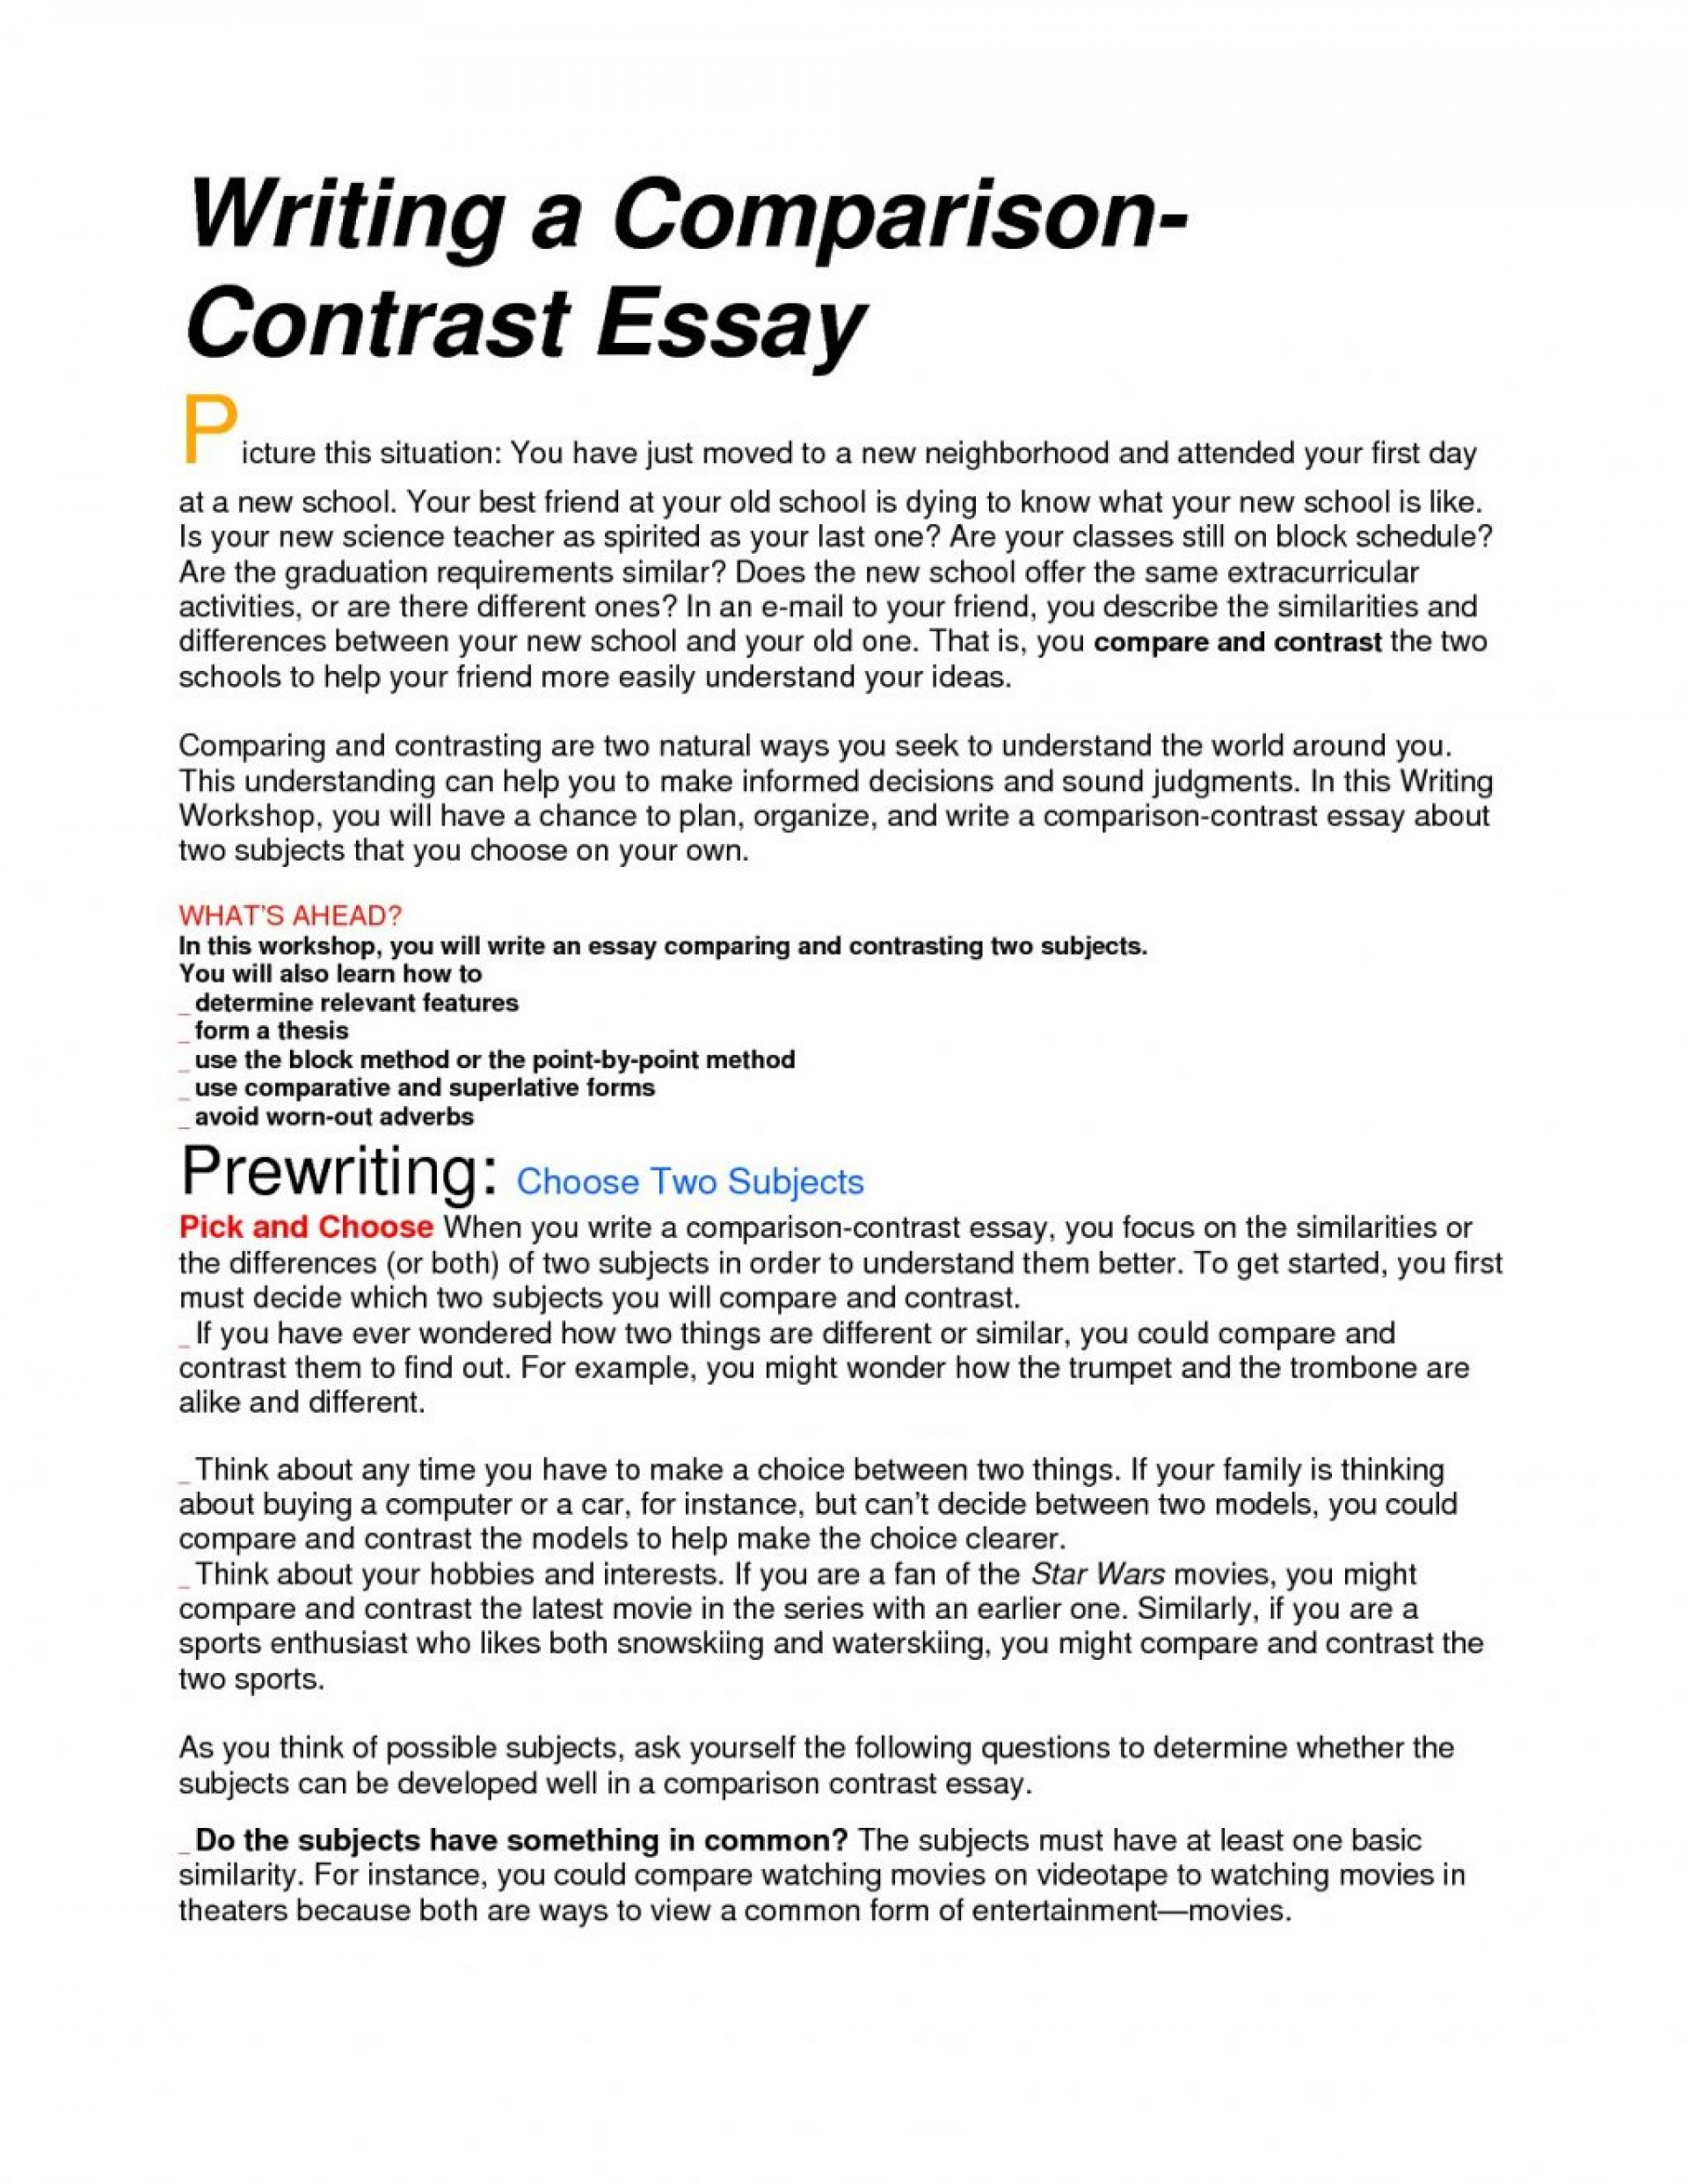 009 Sythesis Of Nanopolymeric Cheap Thesis Statement Proofreading Compare And Contrasty Topics For High Schoolents Photo Comparisonys Esl How To Teach The 1024x1325 Unforgettable Comparison Contrast Essay School Prompts Middle 1920